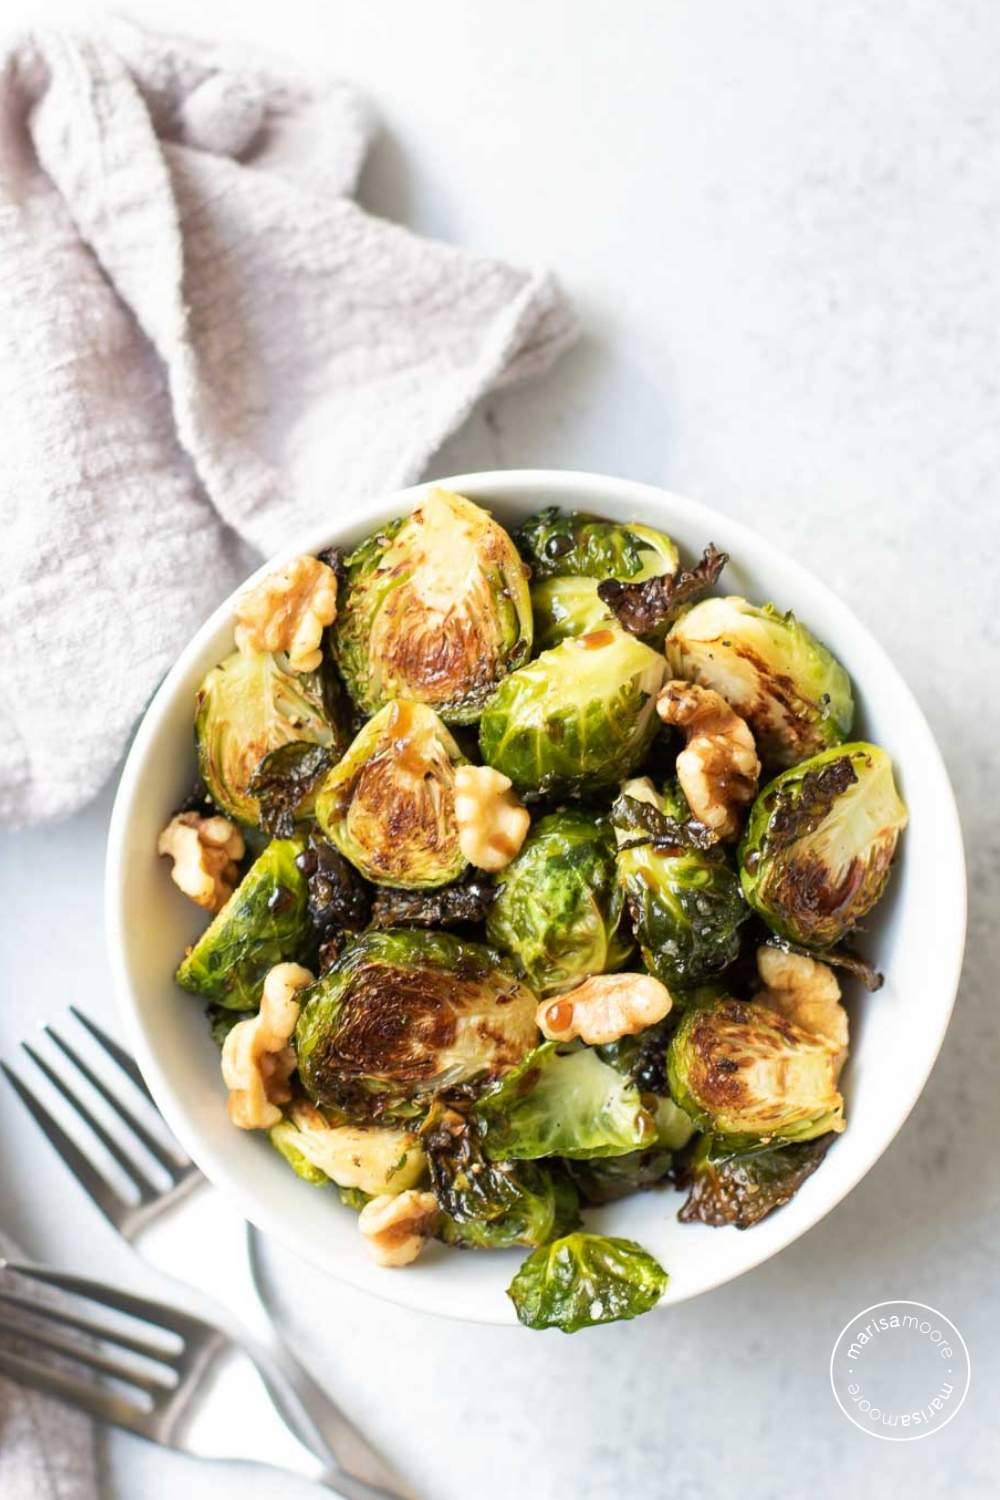 Roasted Brussels Sprouts in a white bowl with a gray napkin and two forks